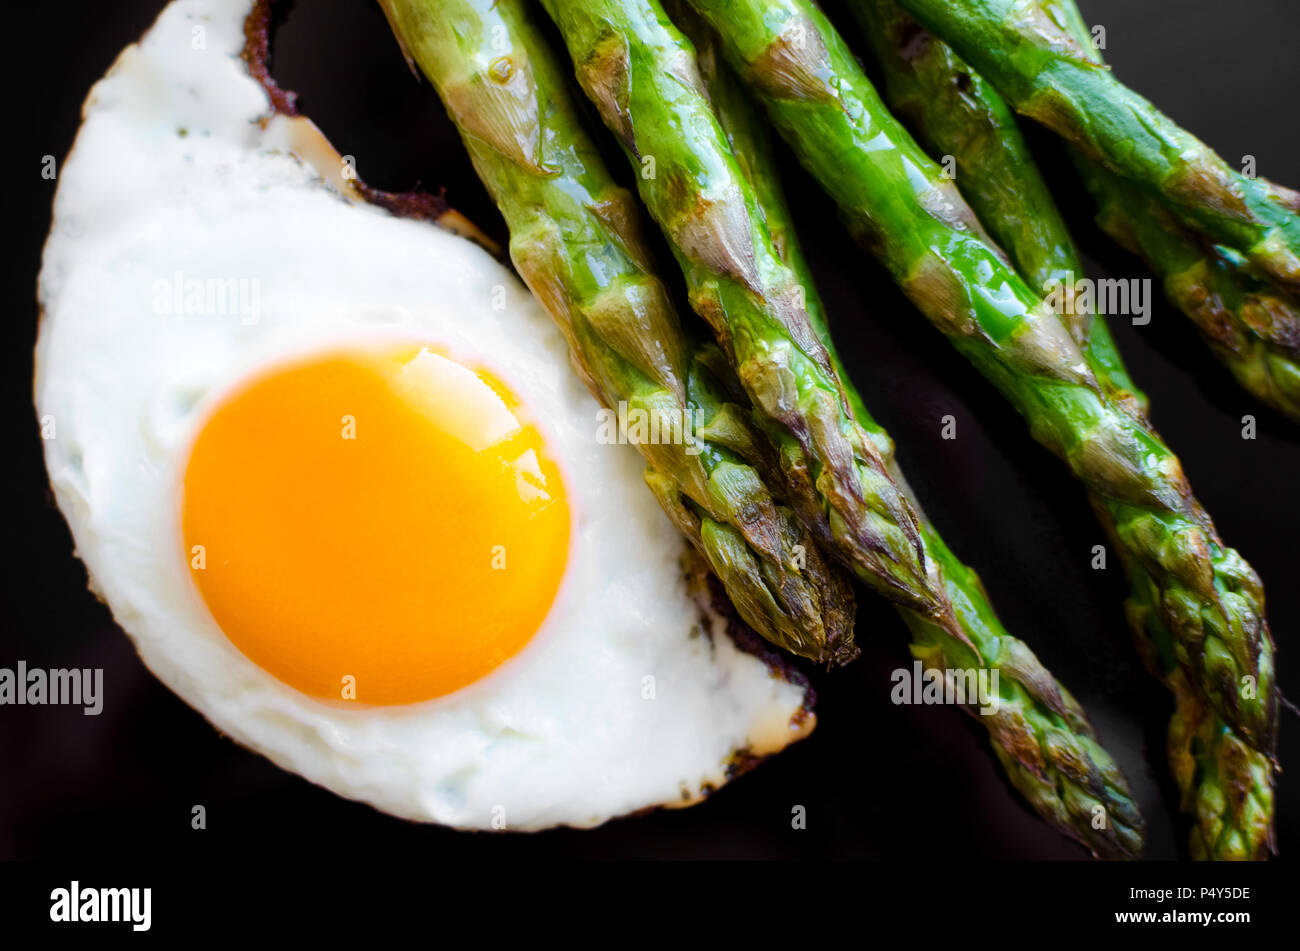 Fried egg and roasted fresh asparagus in black plate. Healthy lunch concept. Delicious, nutritious eating. Top view. - Stock Image